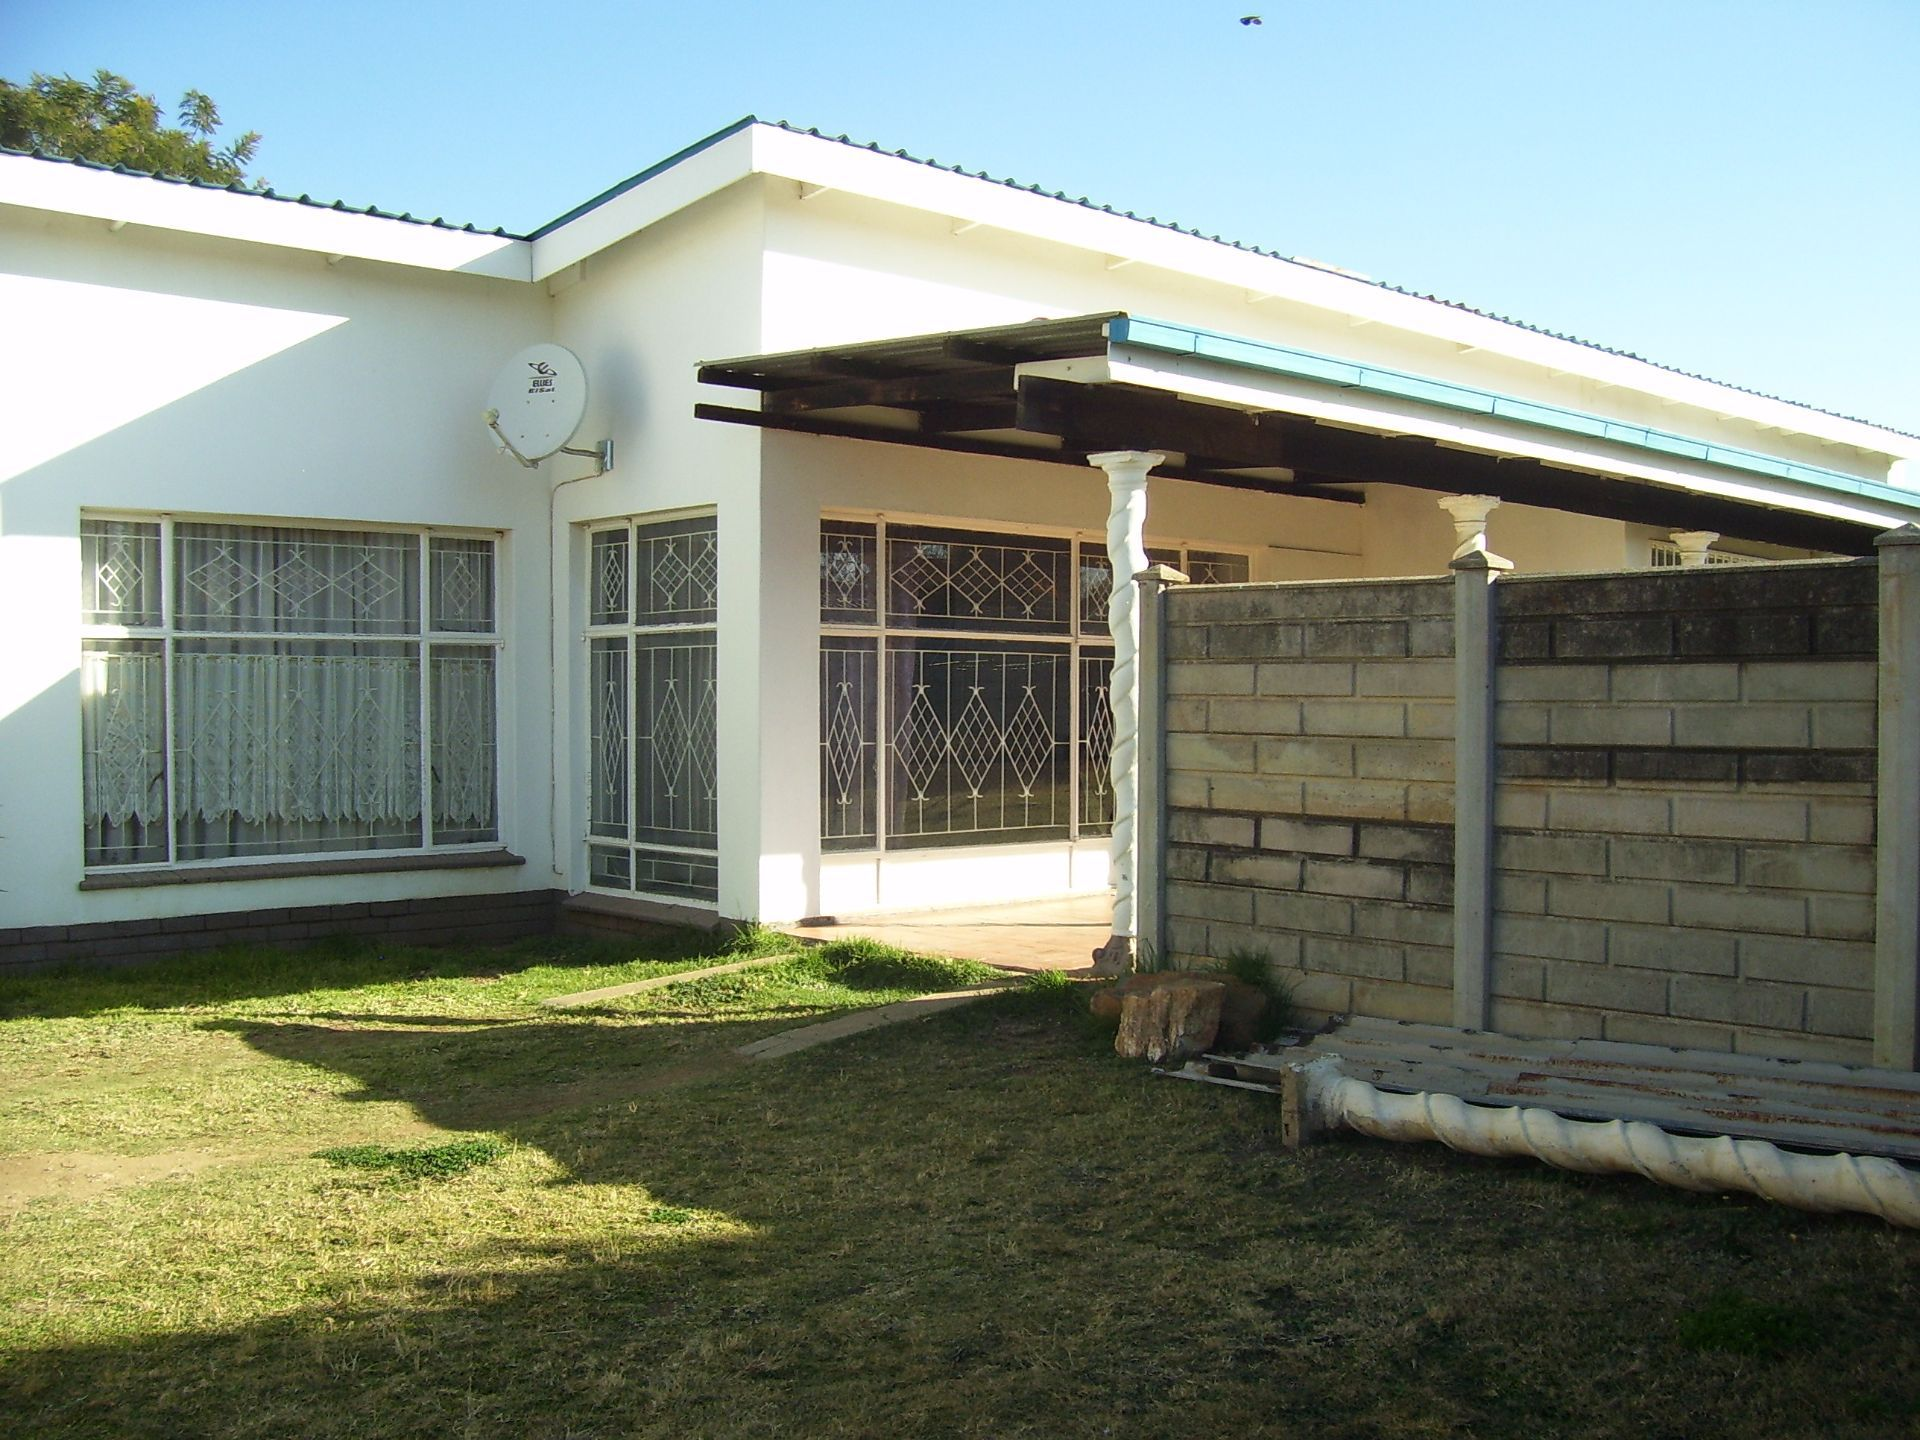 Suid Dorp property for sale. Ref No: 13503270. Picture no 4